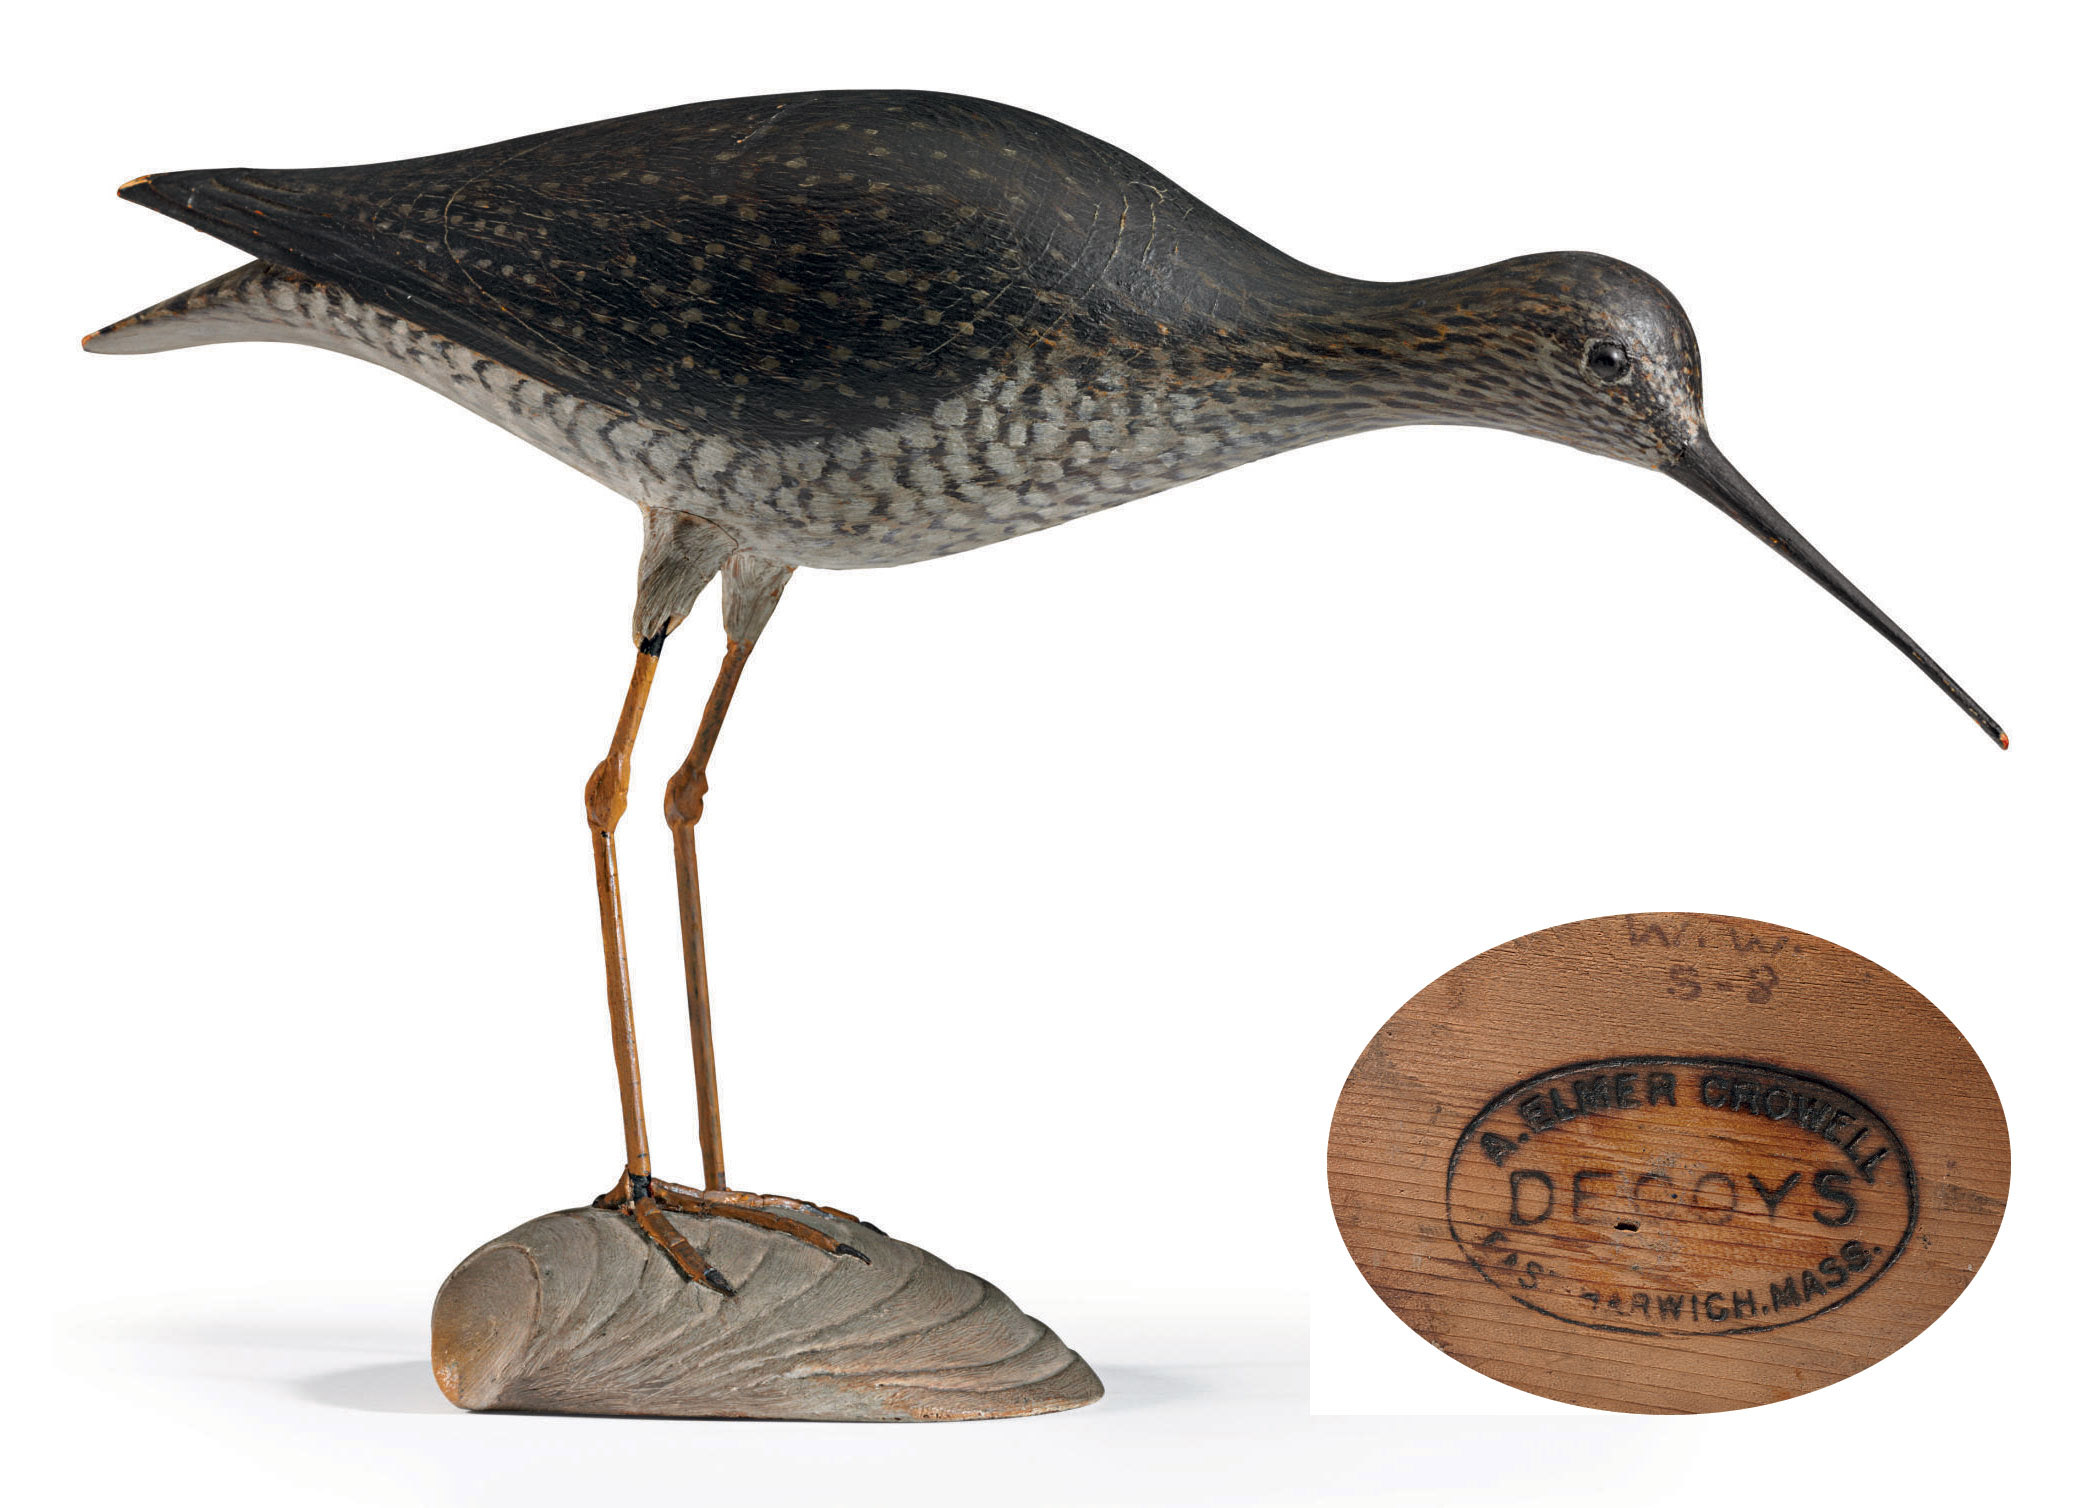 A GREATER YELLOWLEGS